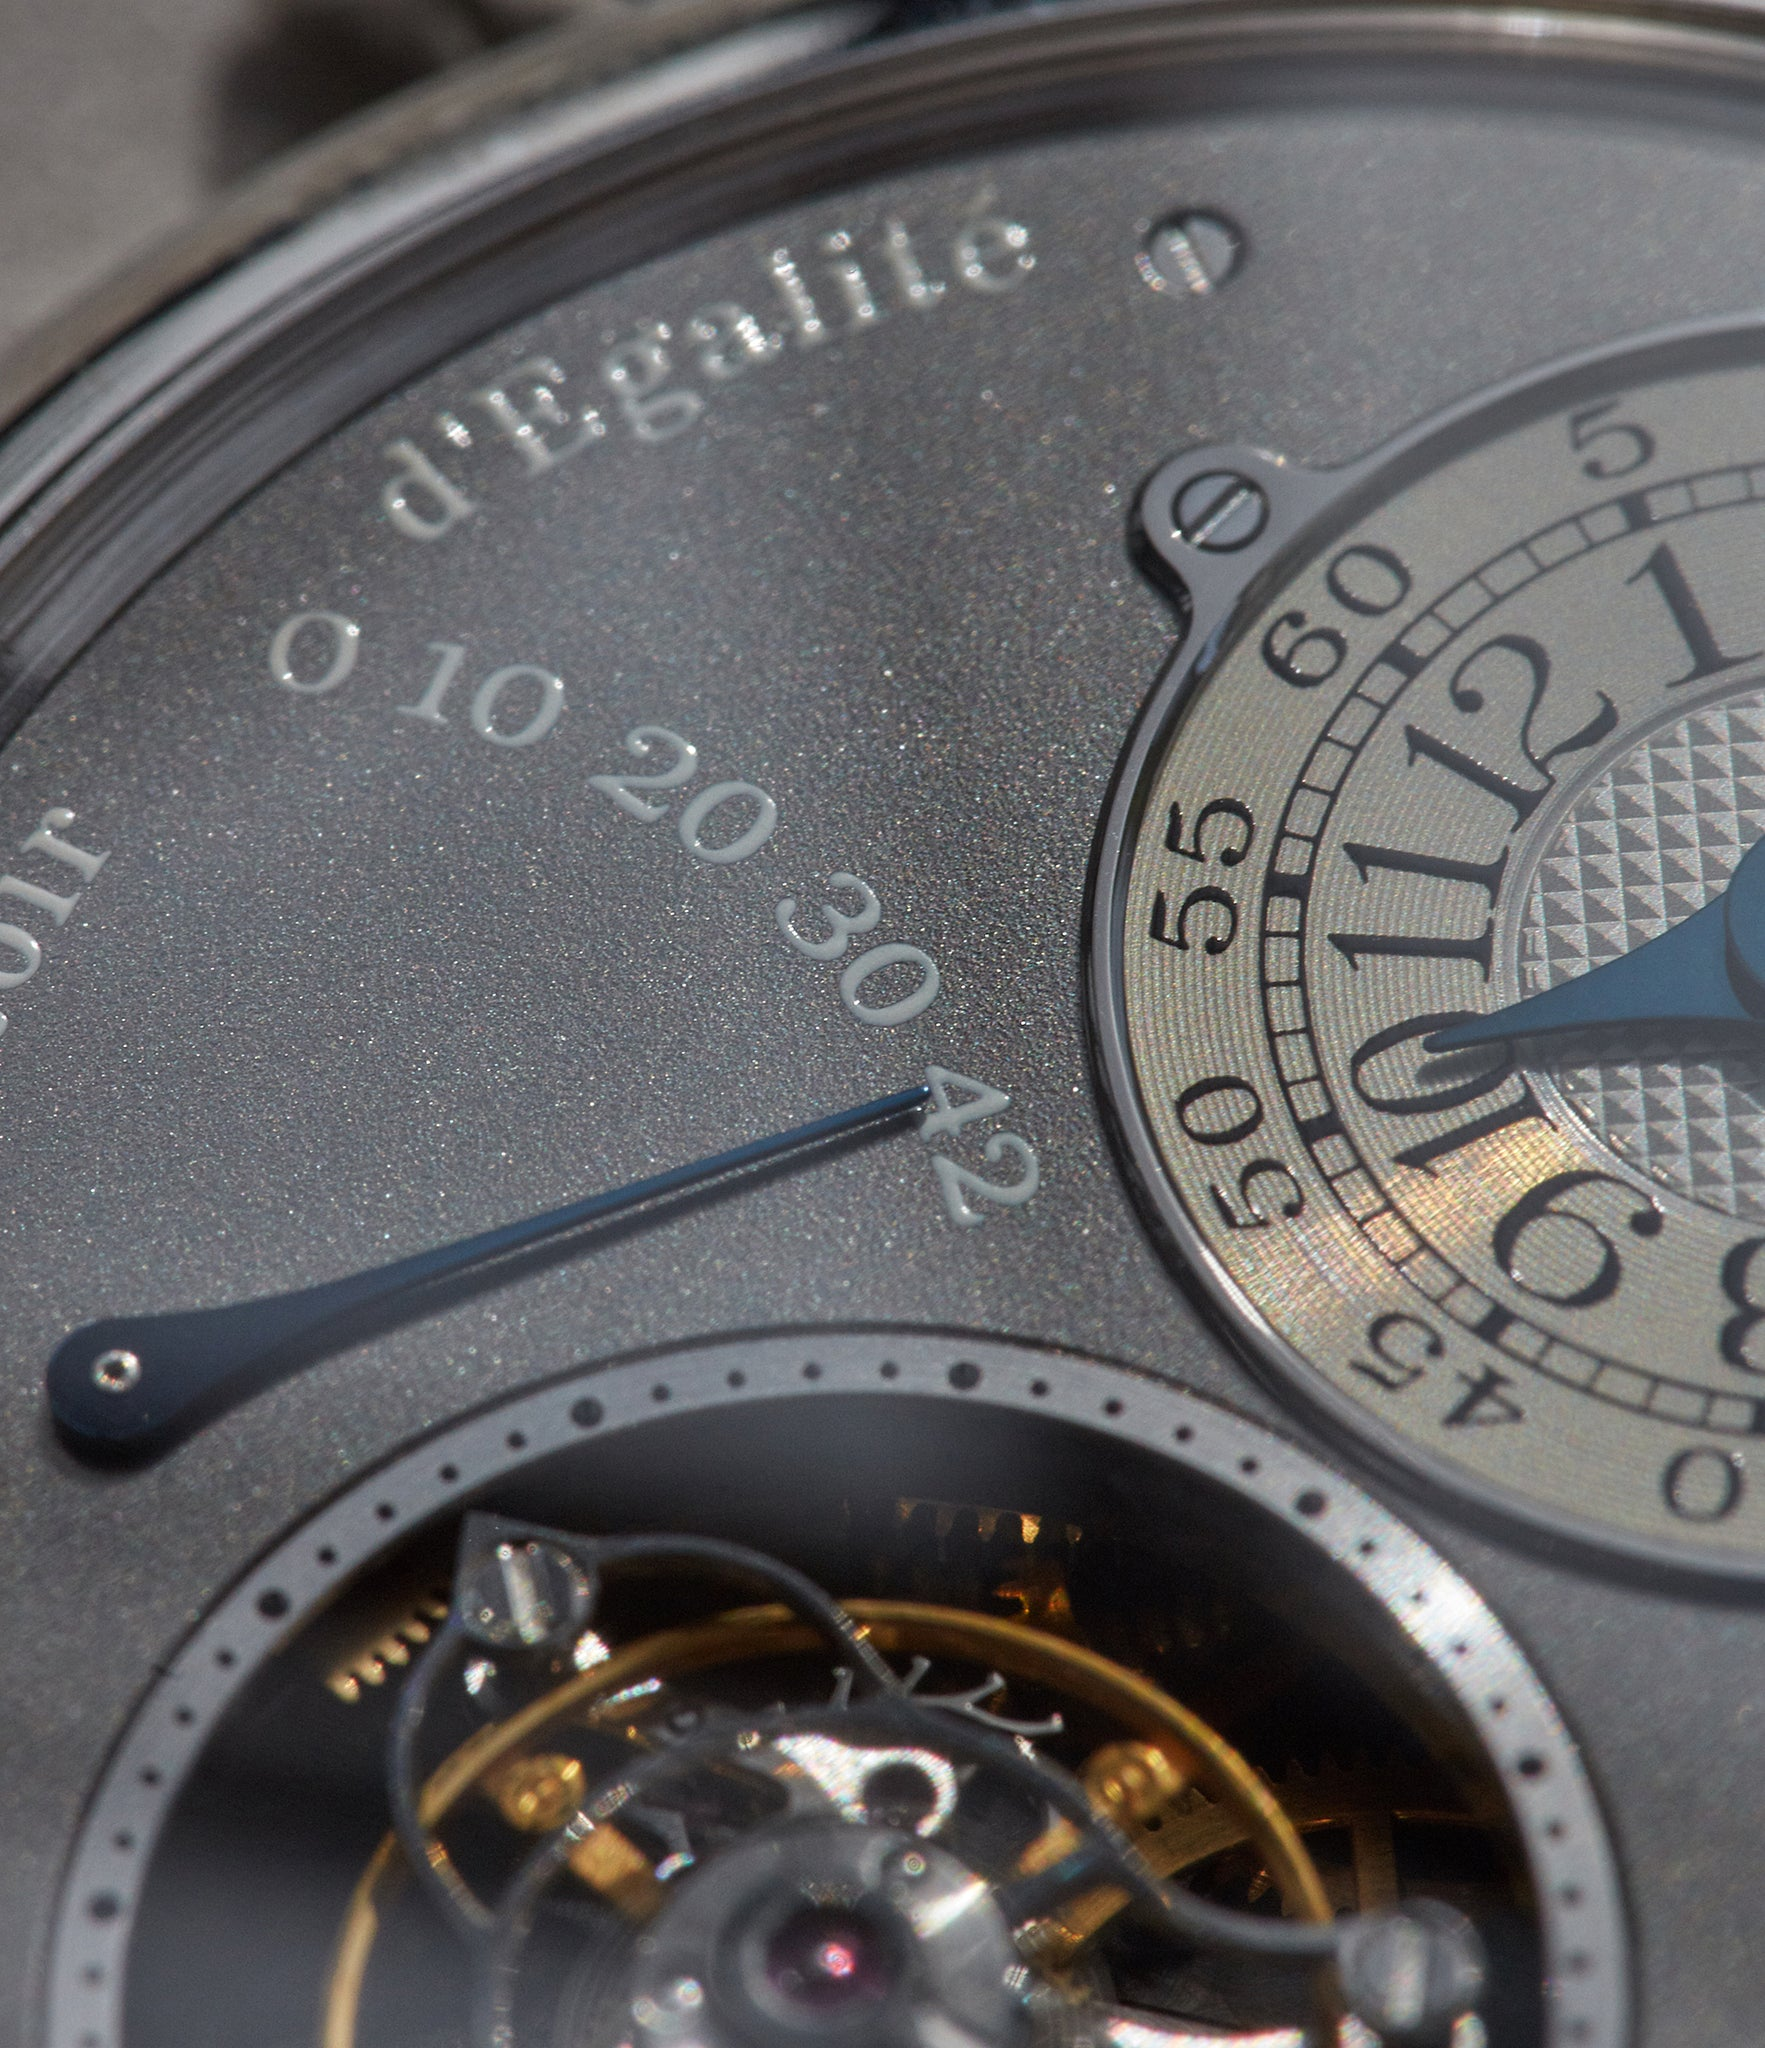 Macro shot showing details on the dial of the Tourbillon Souverain from the Ruthenium collection from F.P. Journe